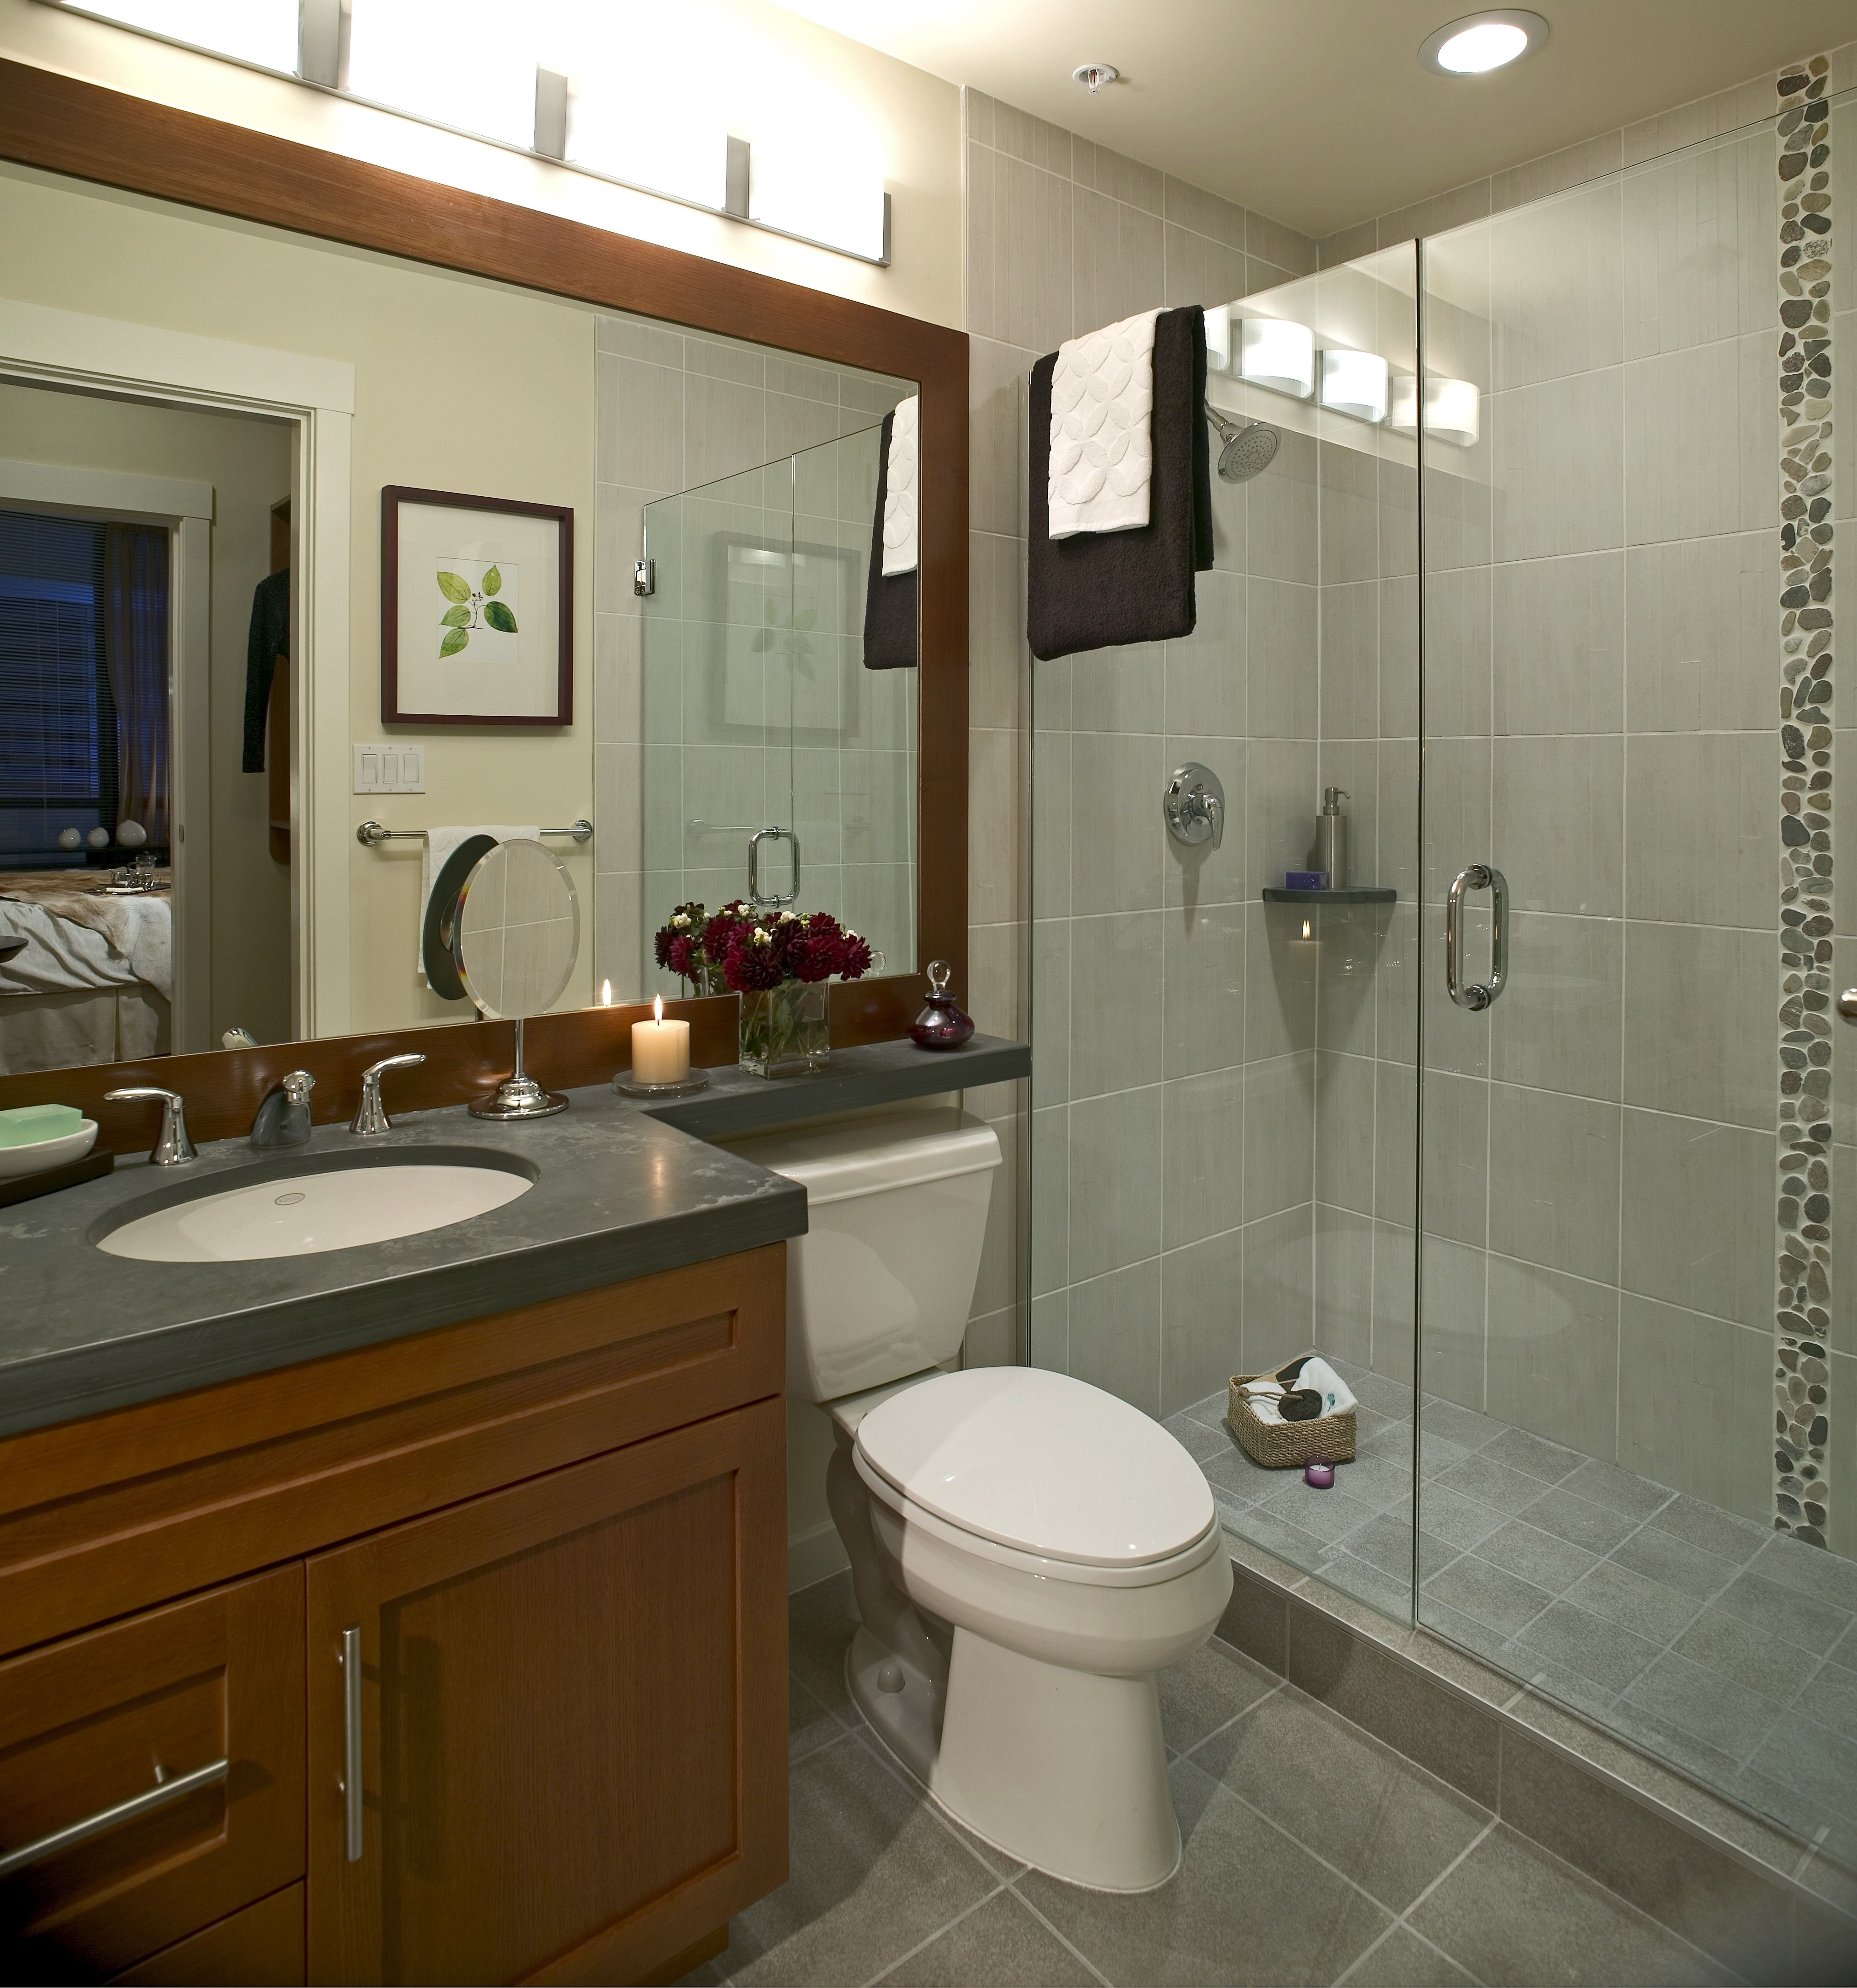 Install A Basement Bathroom Without The Need To Break Concrete The Sanipro Macerati Basement Bathroom Remodeling Basement Bathroom Design Basement Toilet Pump